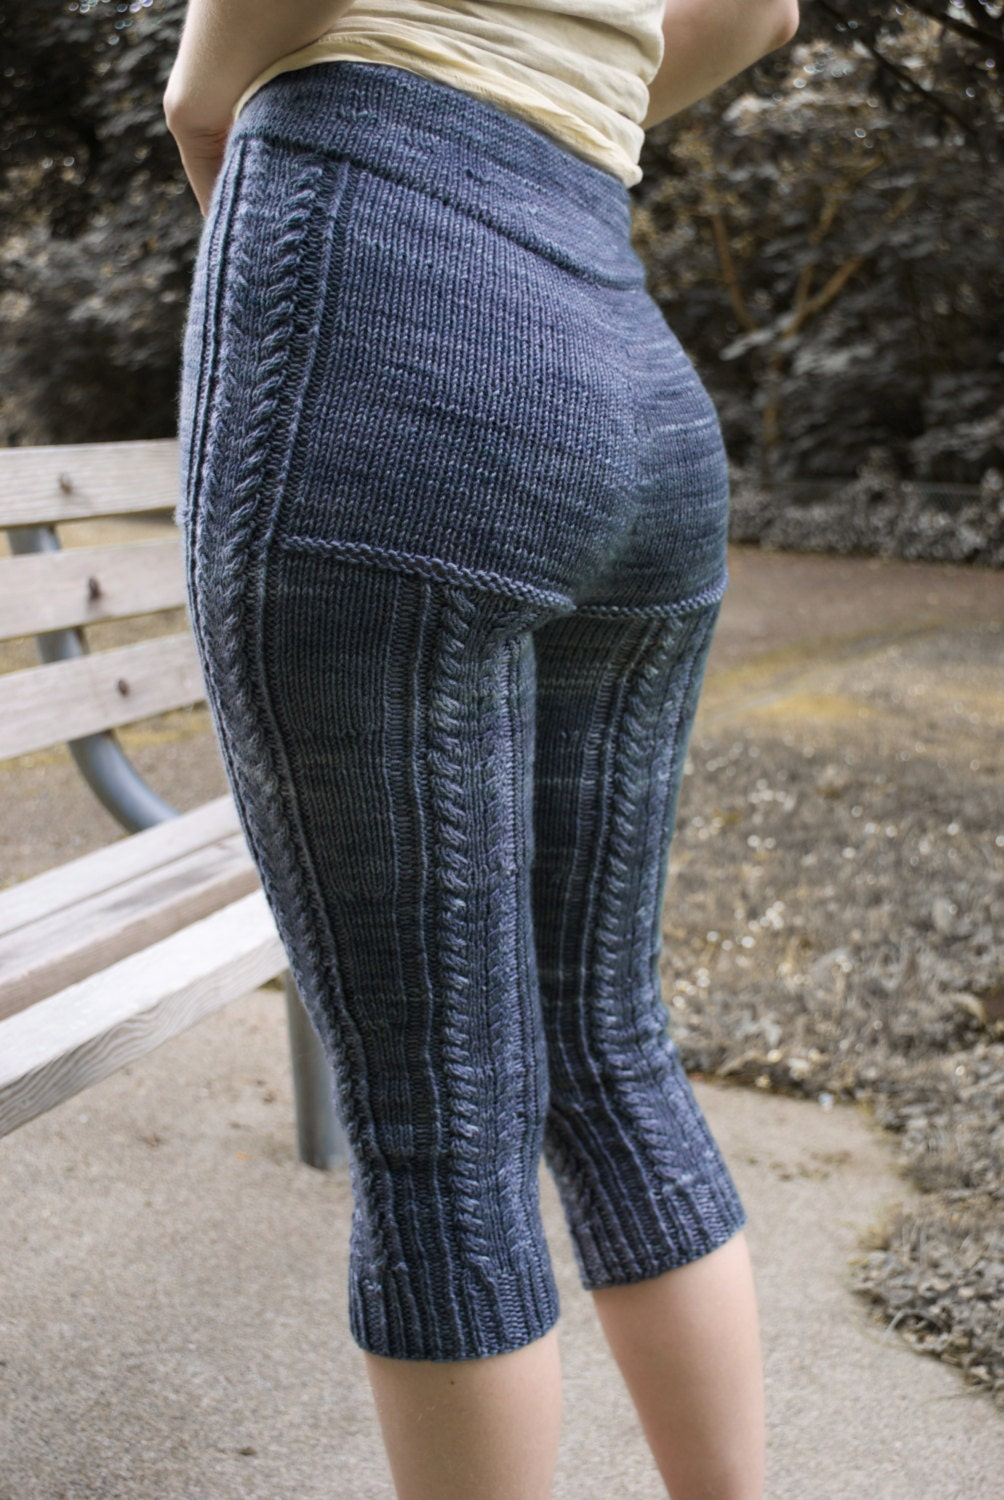 Knit Leggings Pattern : Kalaloch Cabled Leggings PDF Knitting Pattern